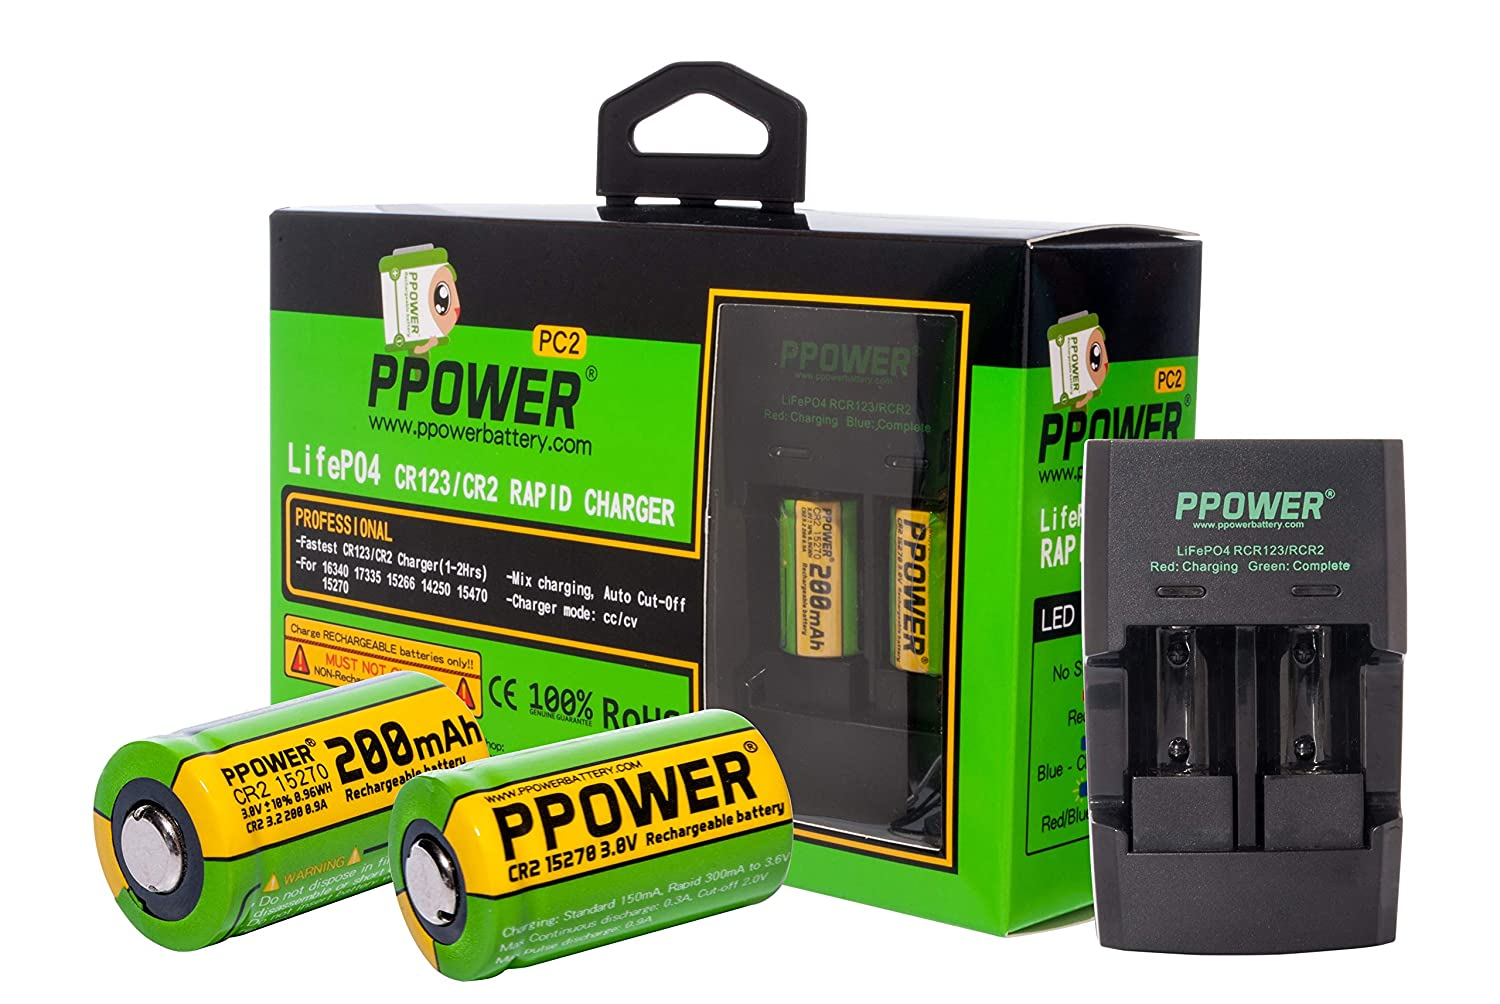 2x Ppower 3v Real Capacity 200 Mah Cr2 15270 15266 200ma Hour 8211 12v Nicad Battery Charger Rechargeable Lifepo4 Batteries Rapid For Lithium Car